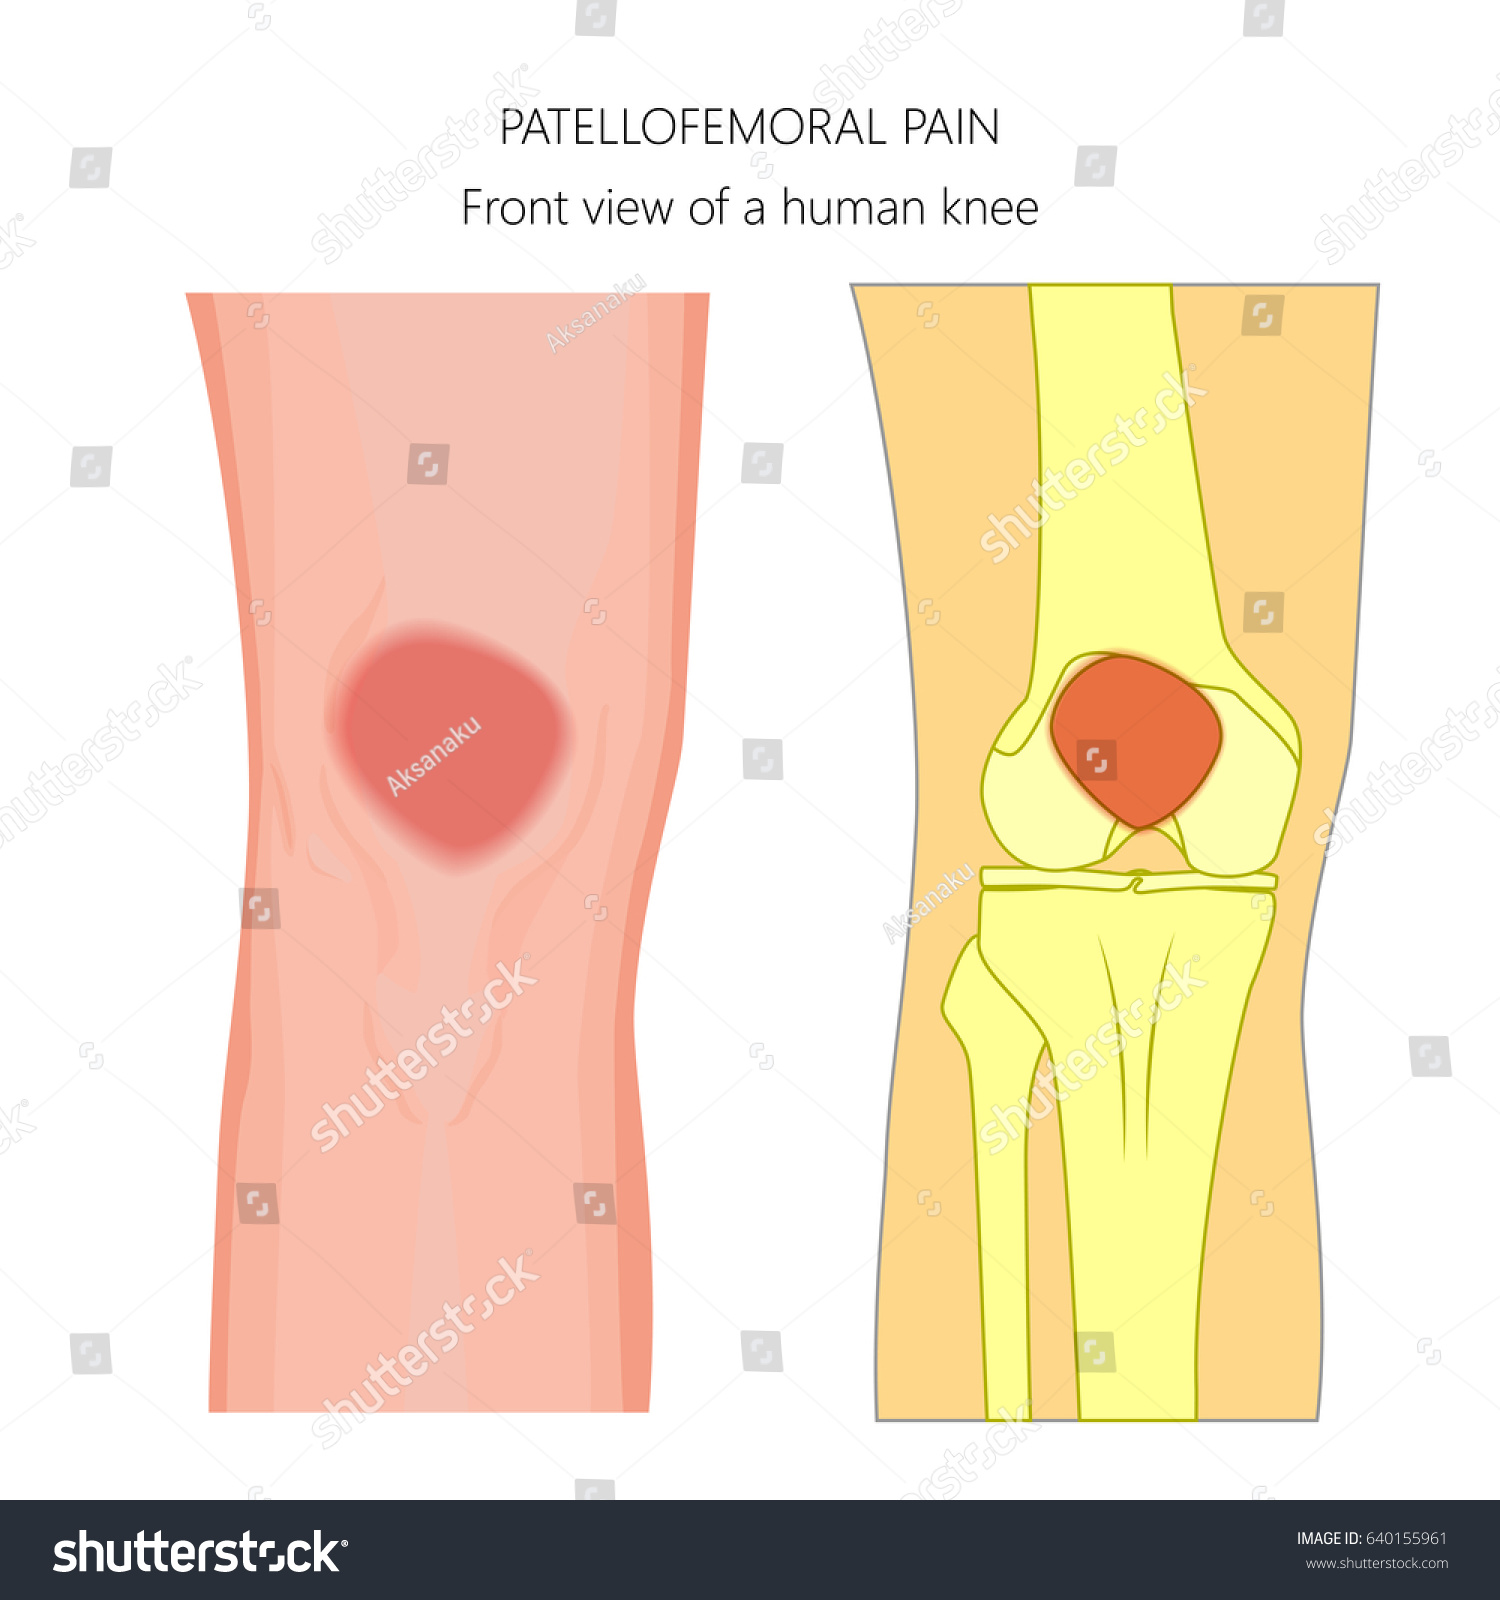 hight resolution of vector illustration of unhealthy human knee joint with patellofemoral pain anatomy of the knee front view of the knee for advertising and other medical